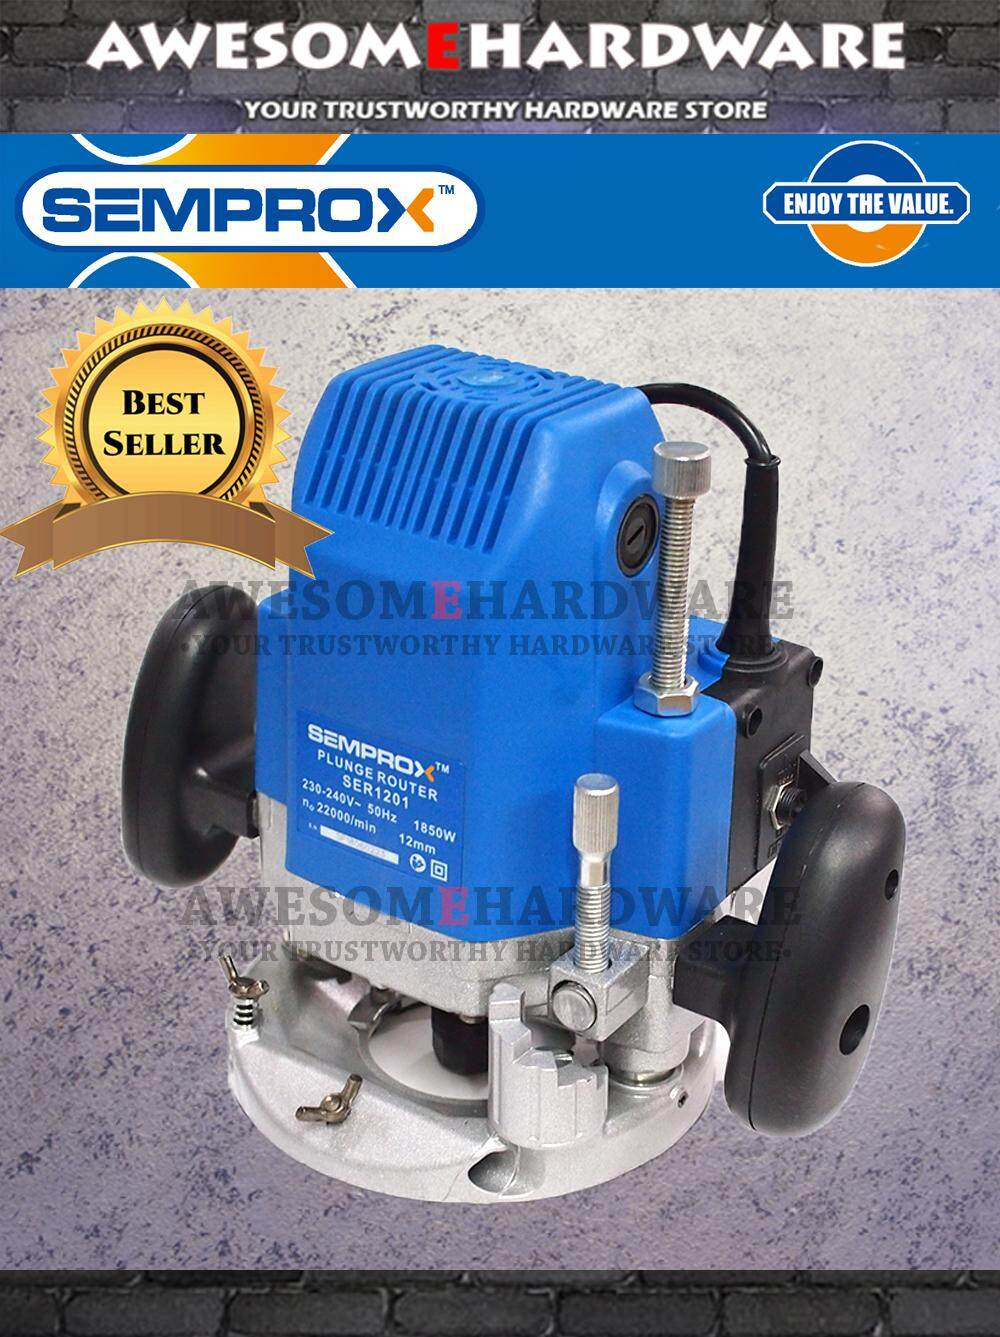 SEMPROX SER1201 1850W ELECTRIC ROUTER